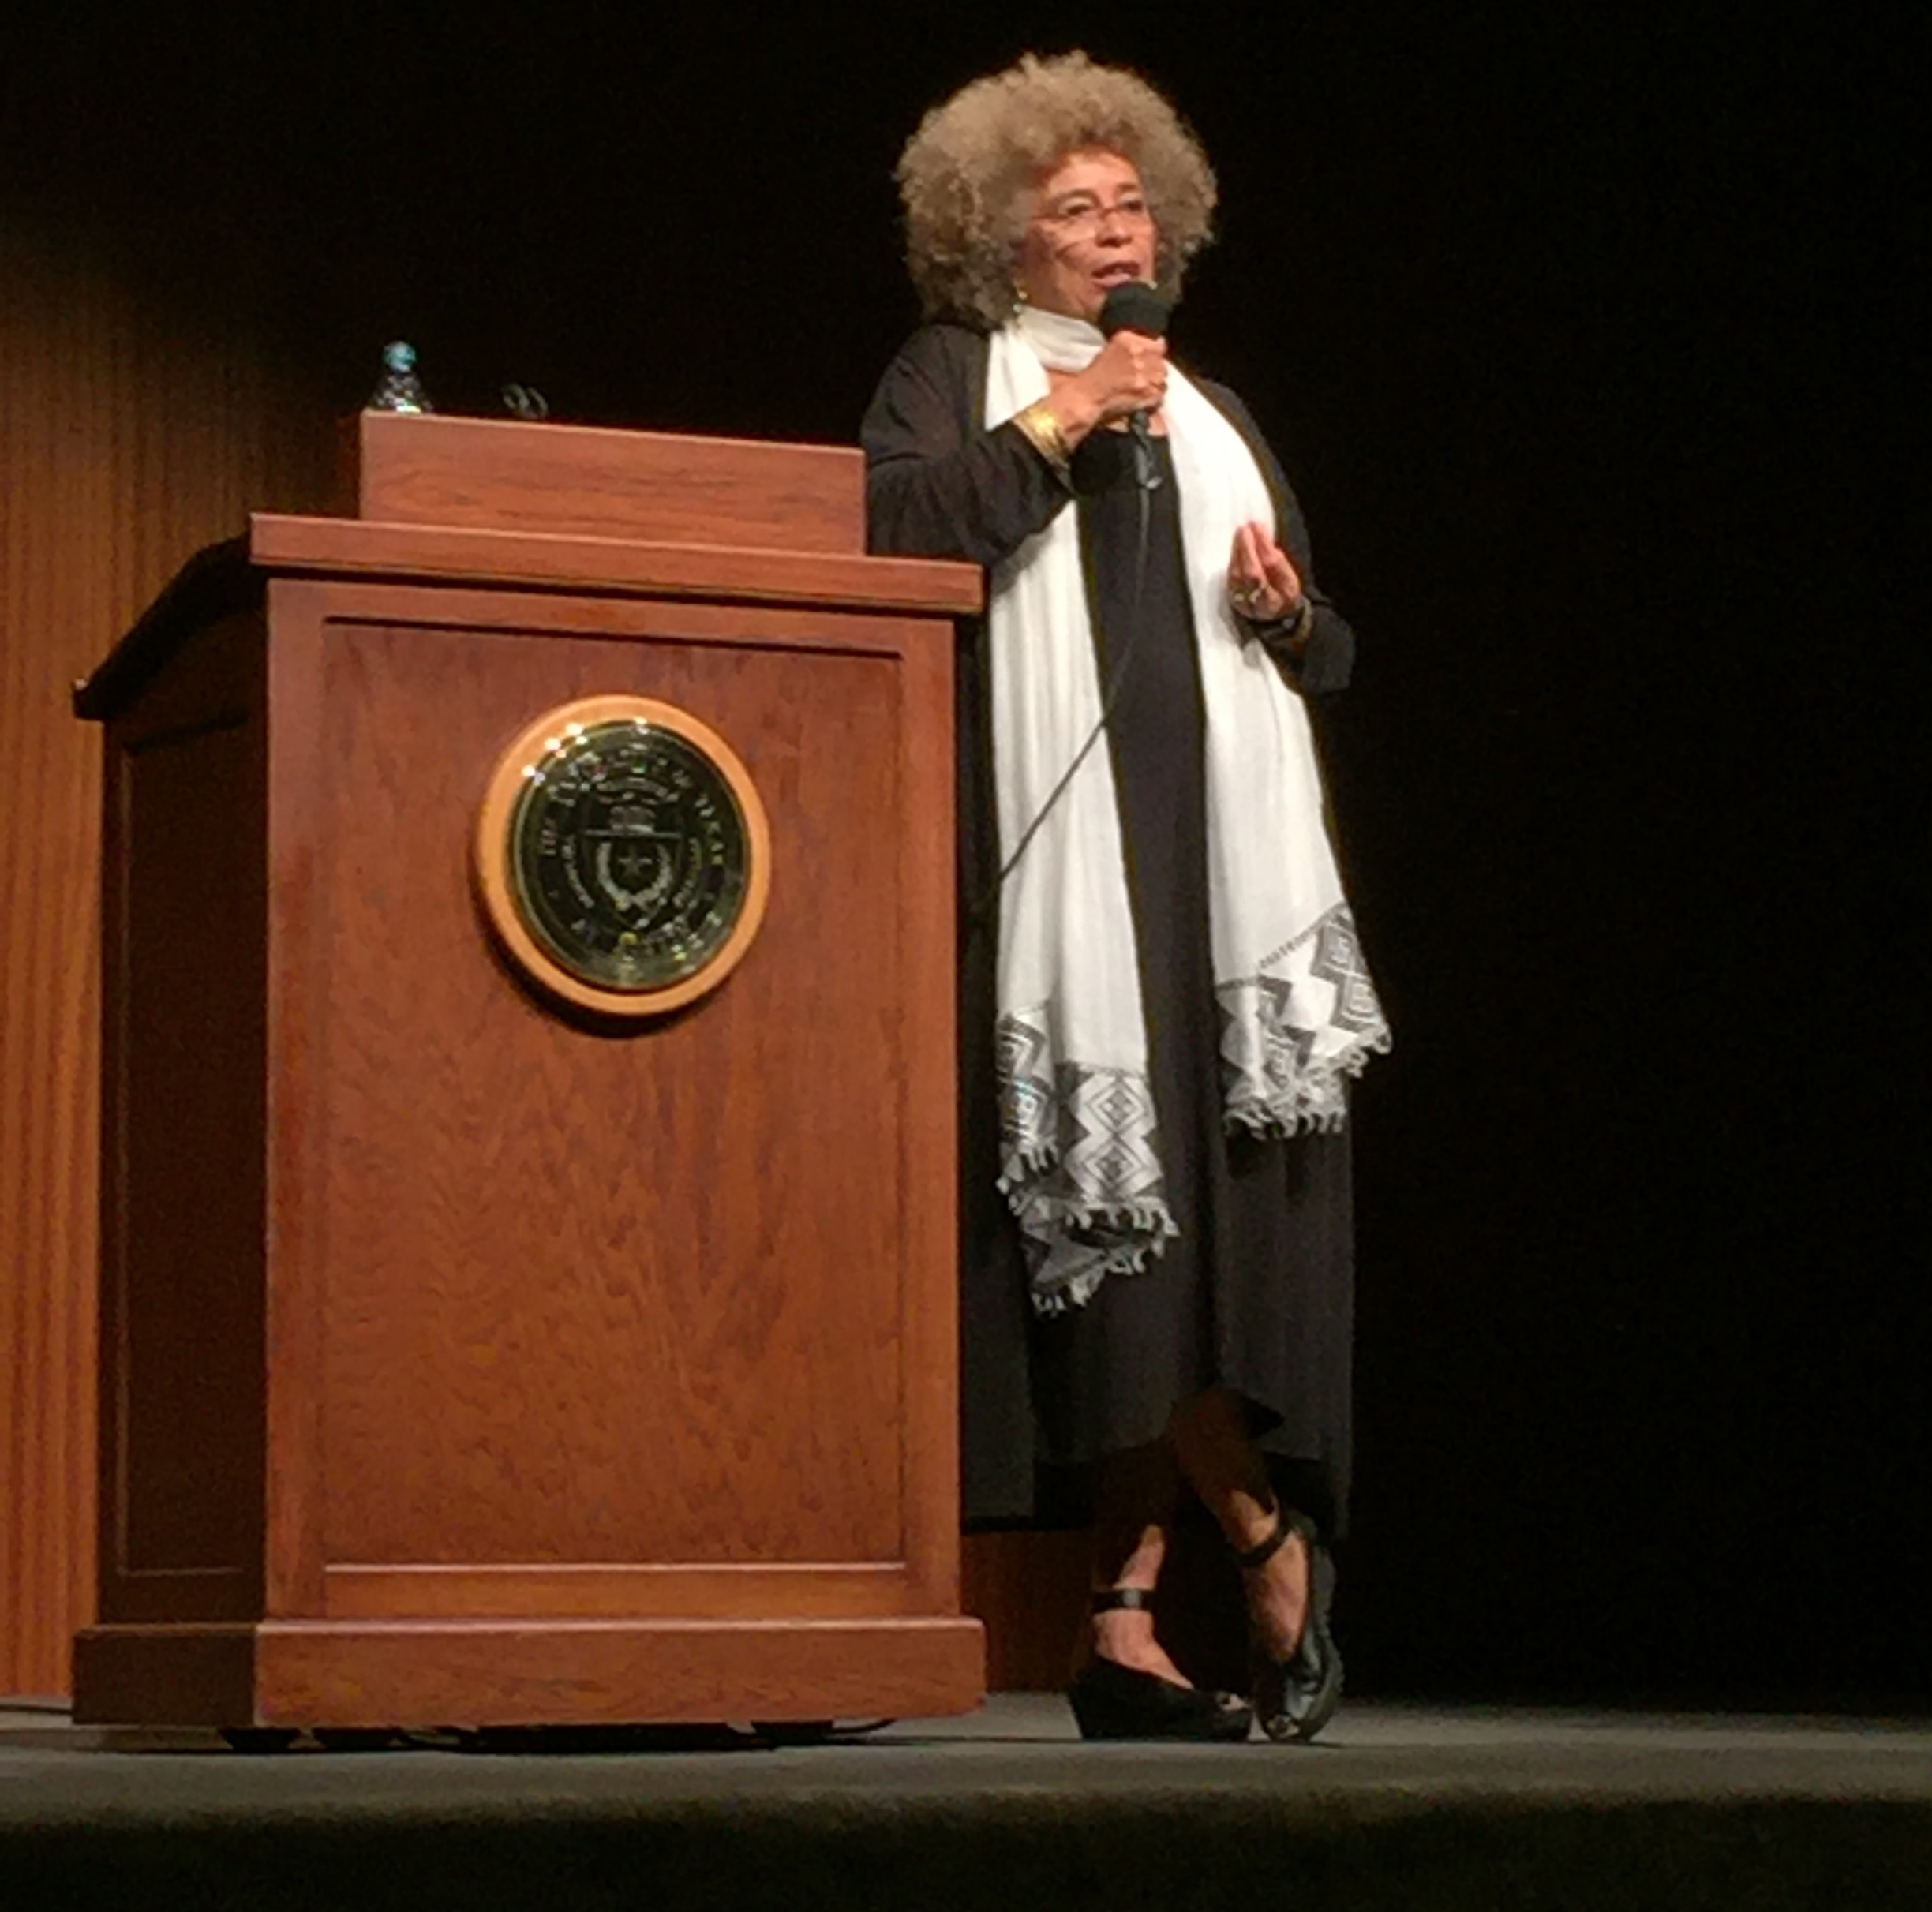 Angela Davis at Black Matters: The Futures of Black Scholarship and Activism, September 30, 2016 (Credit Minkah Makalani)